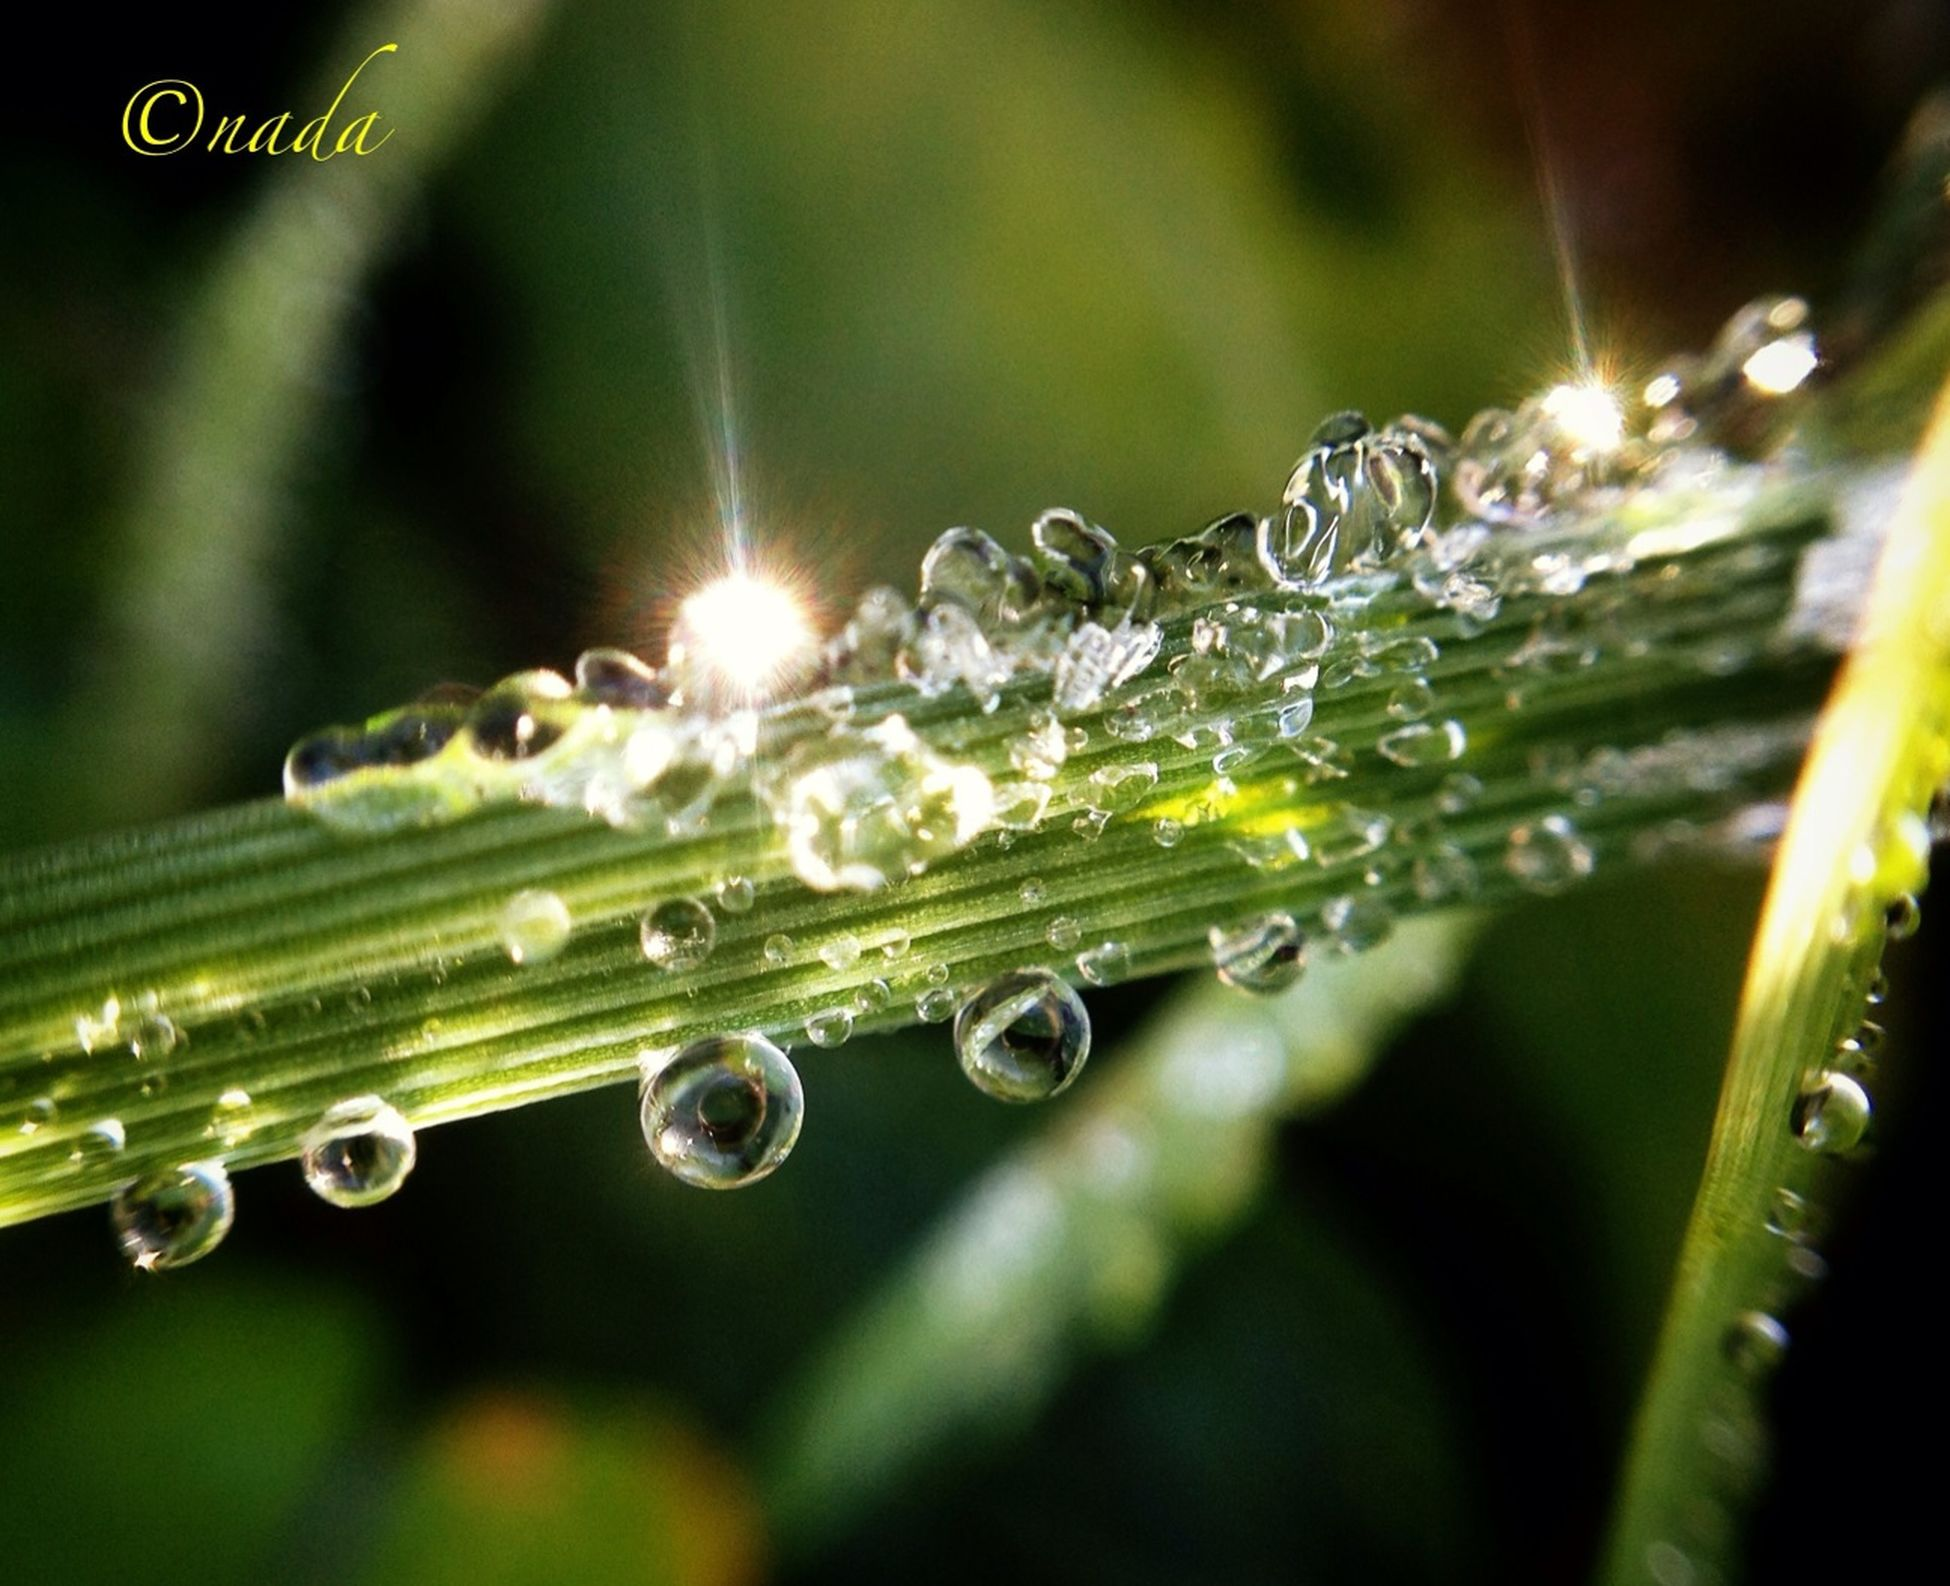 drop, water, wet, dew, close-up, focus on foreground, fragility, freshness, raindrop, droplet, rain, beauty in nature, nature, water drop, purity, growth, green color, selective focus, plant, blade of grass